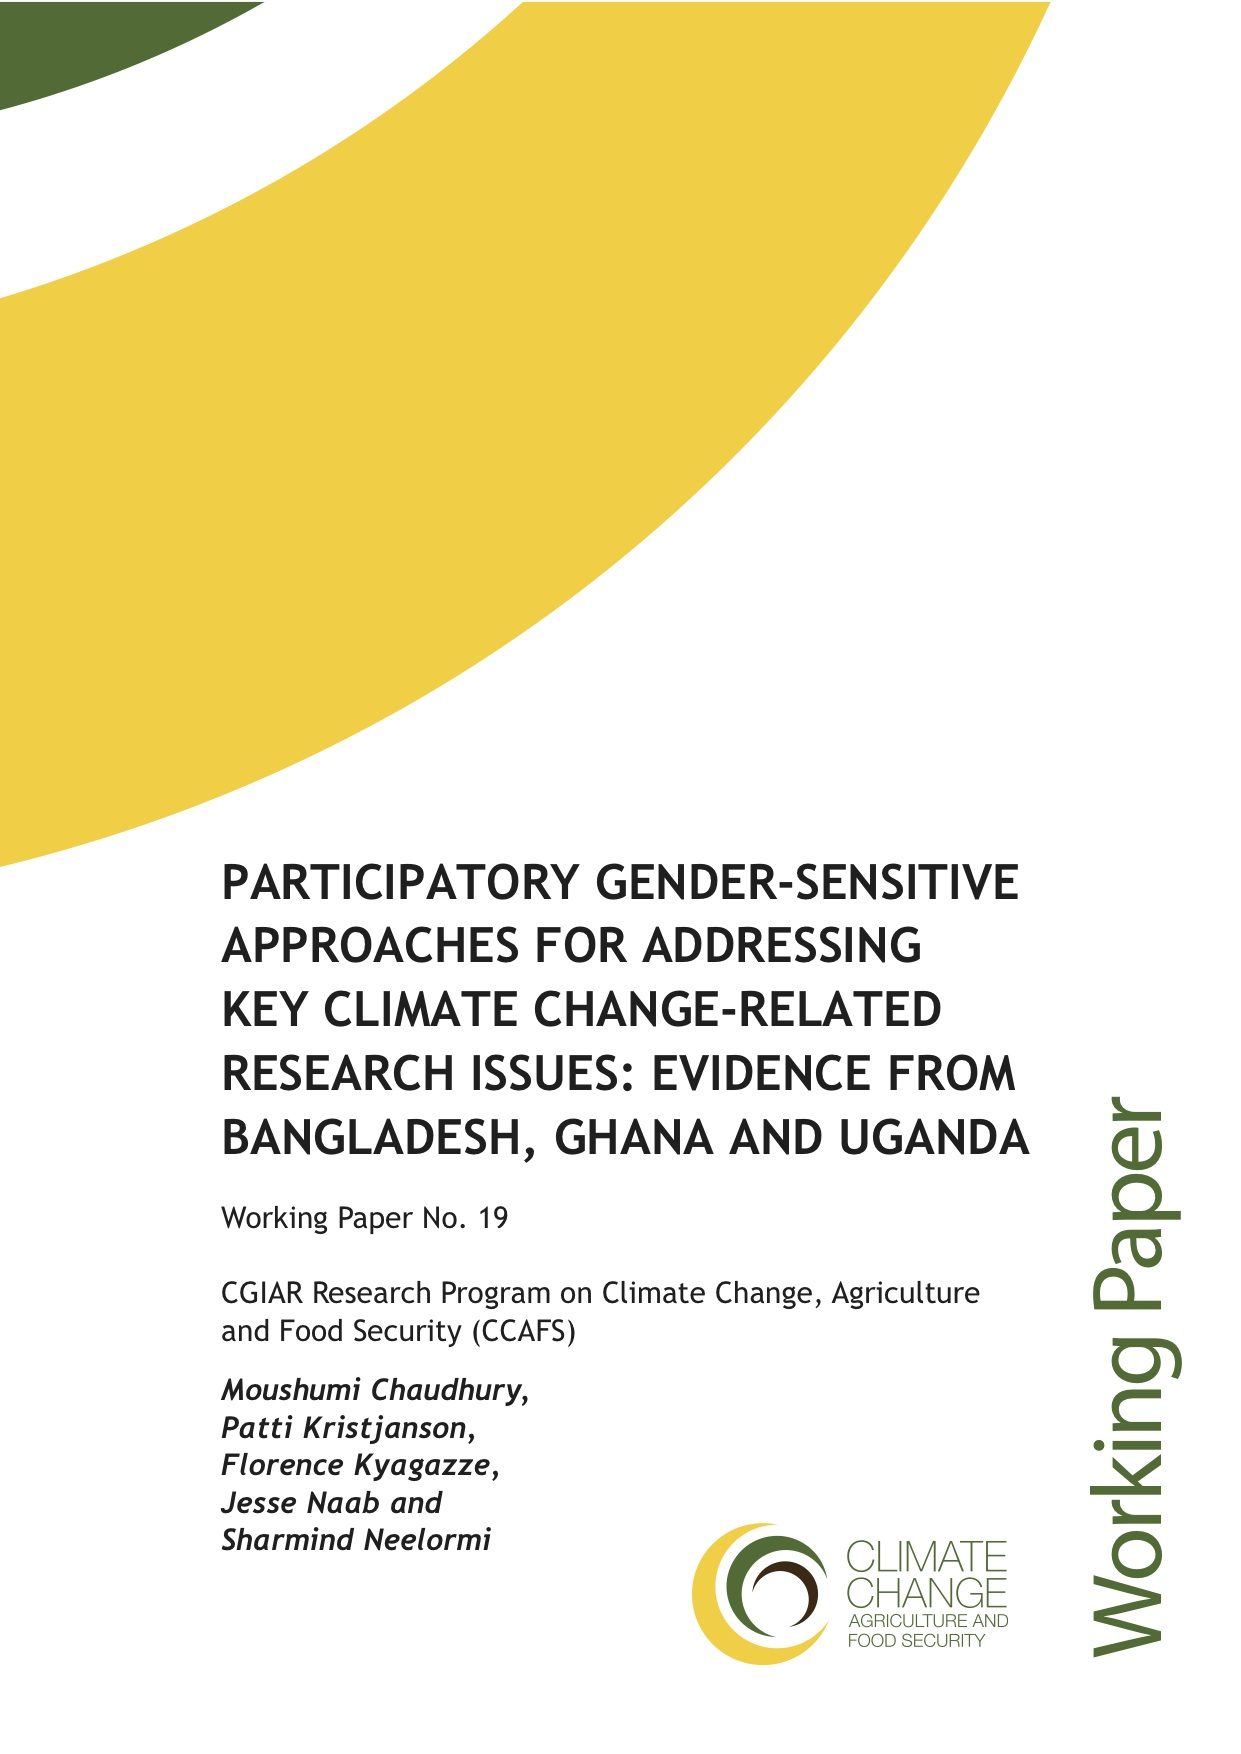 Participatory gender-sensitive approaches for addressing key